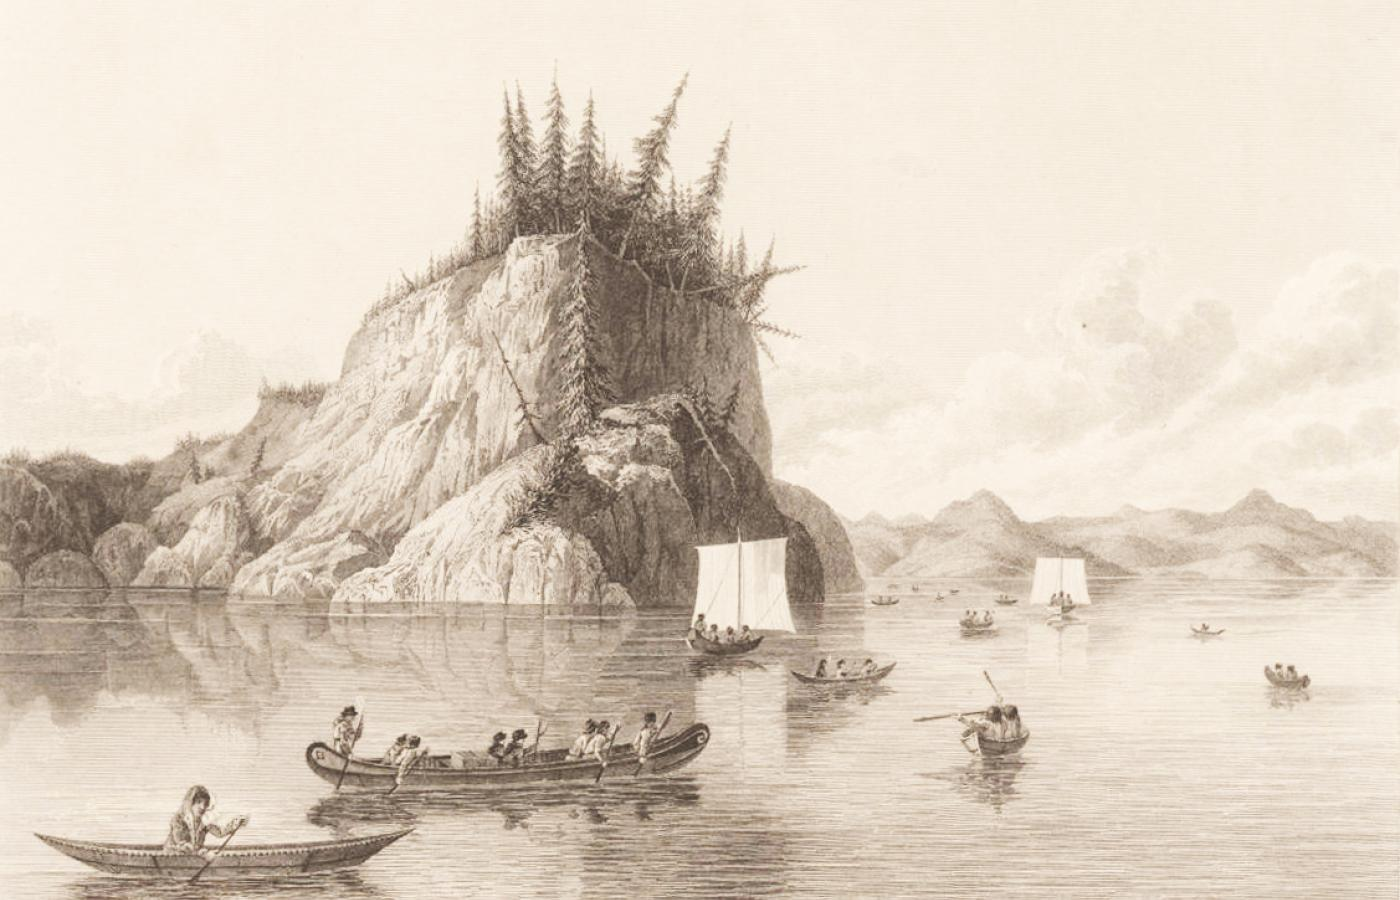 Historical image of explorers in ships along Prosperous Lake in the NWT